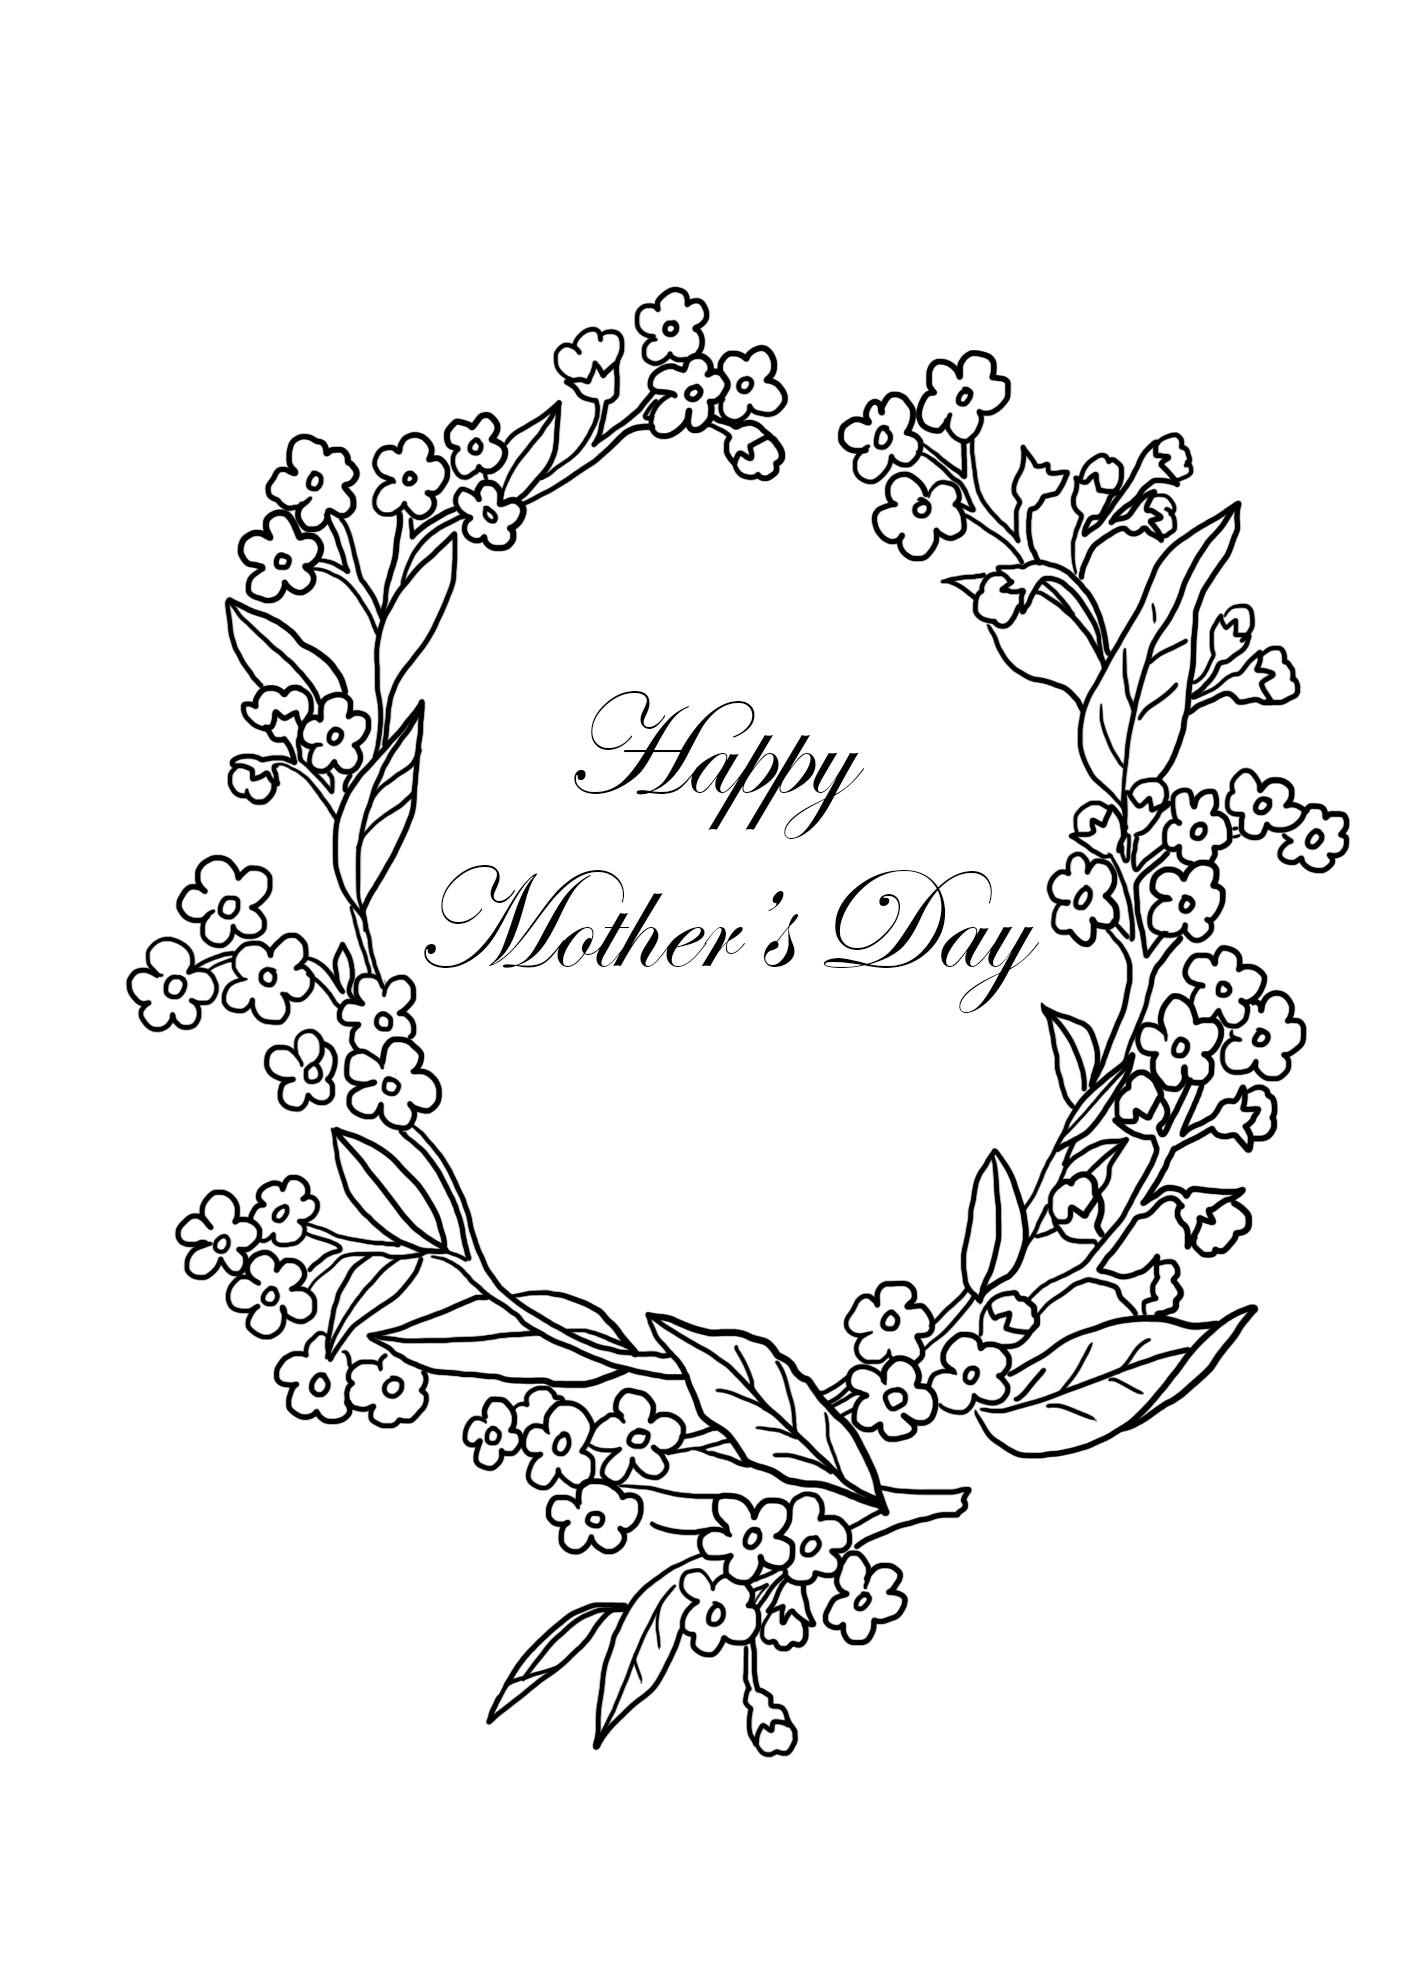 mothers day coloring page with forget-me-not